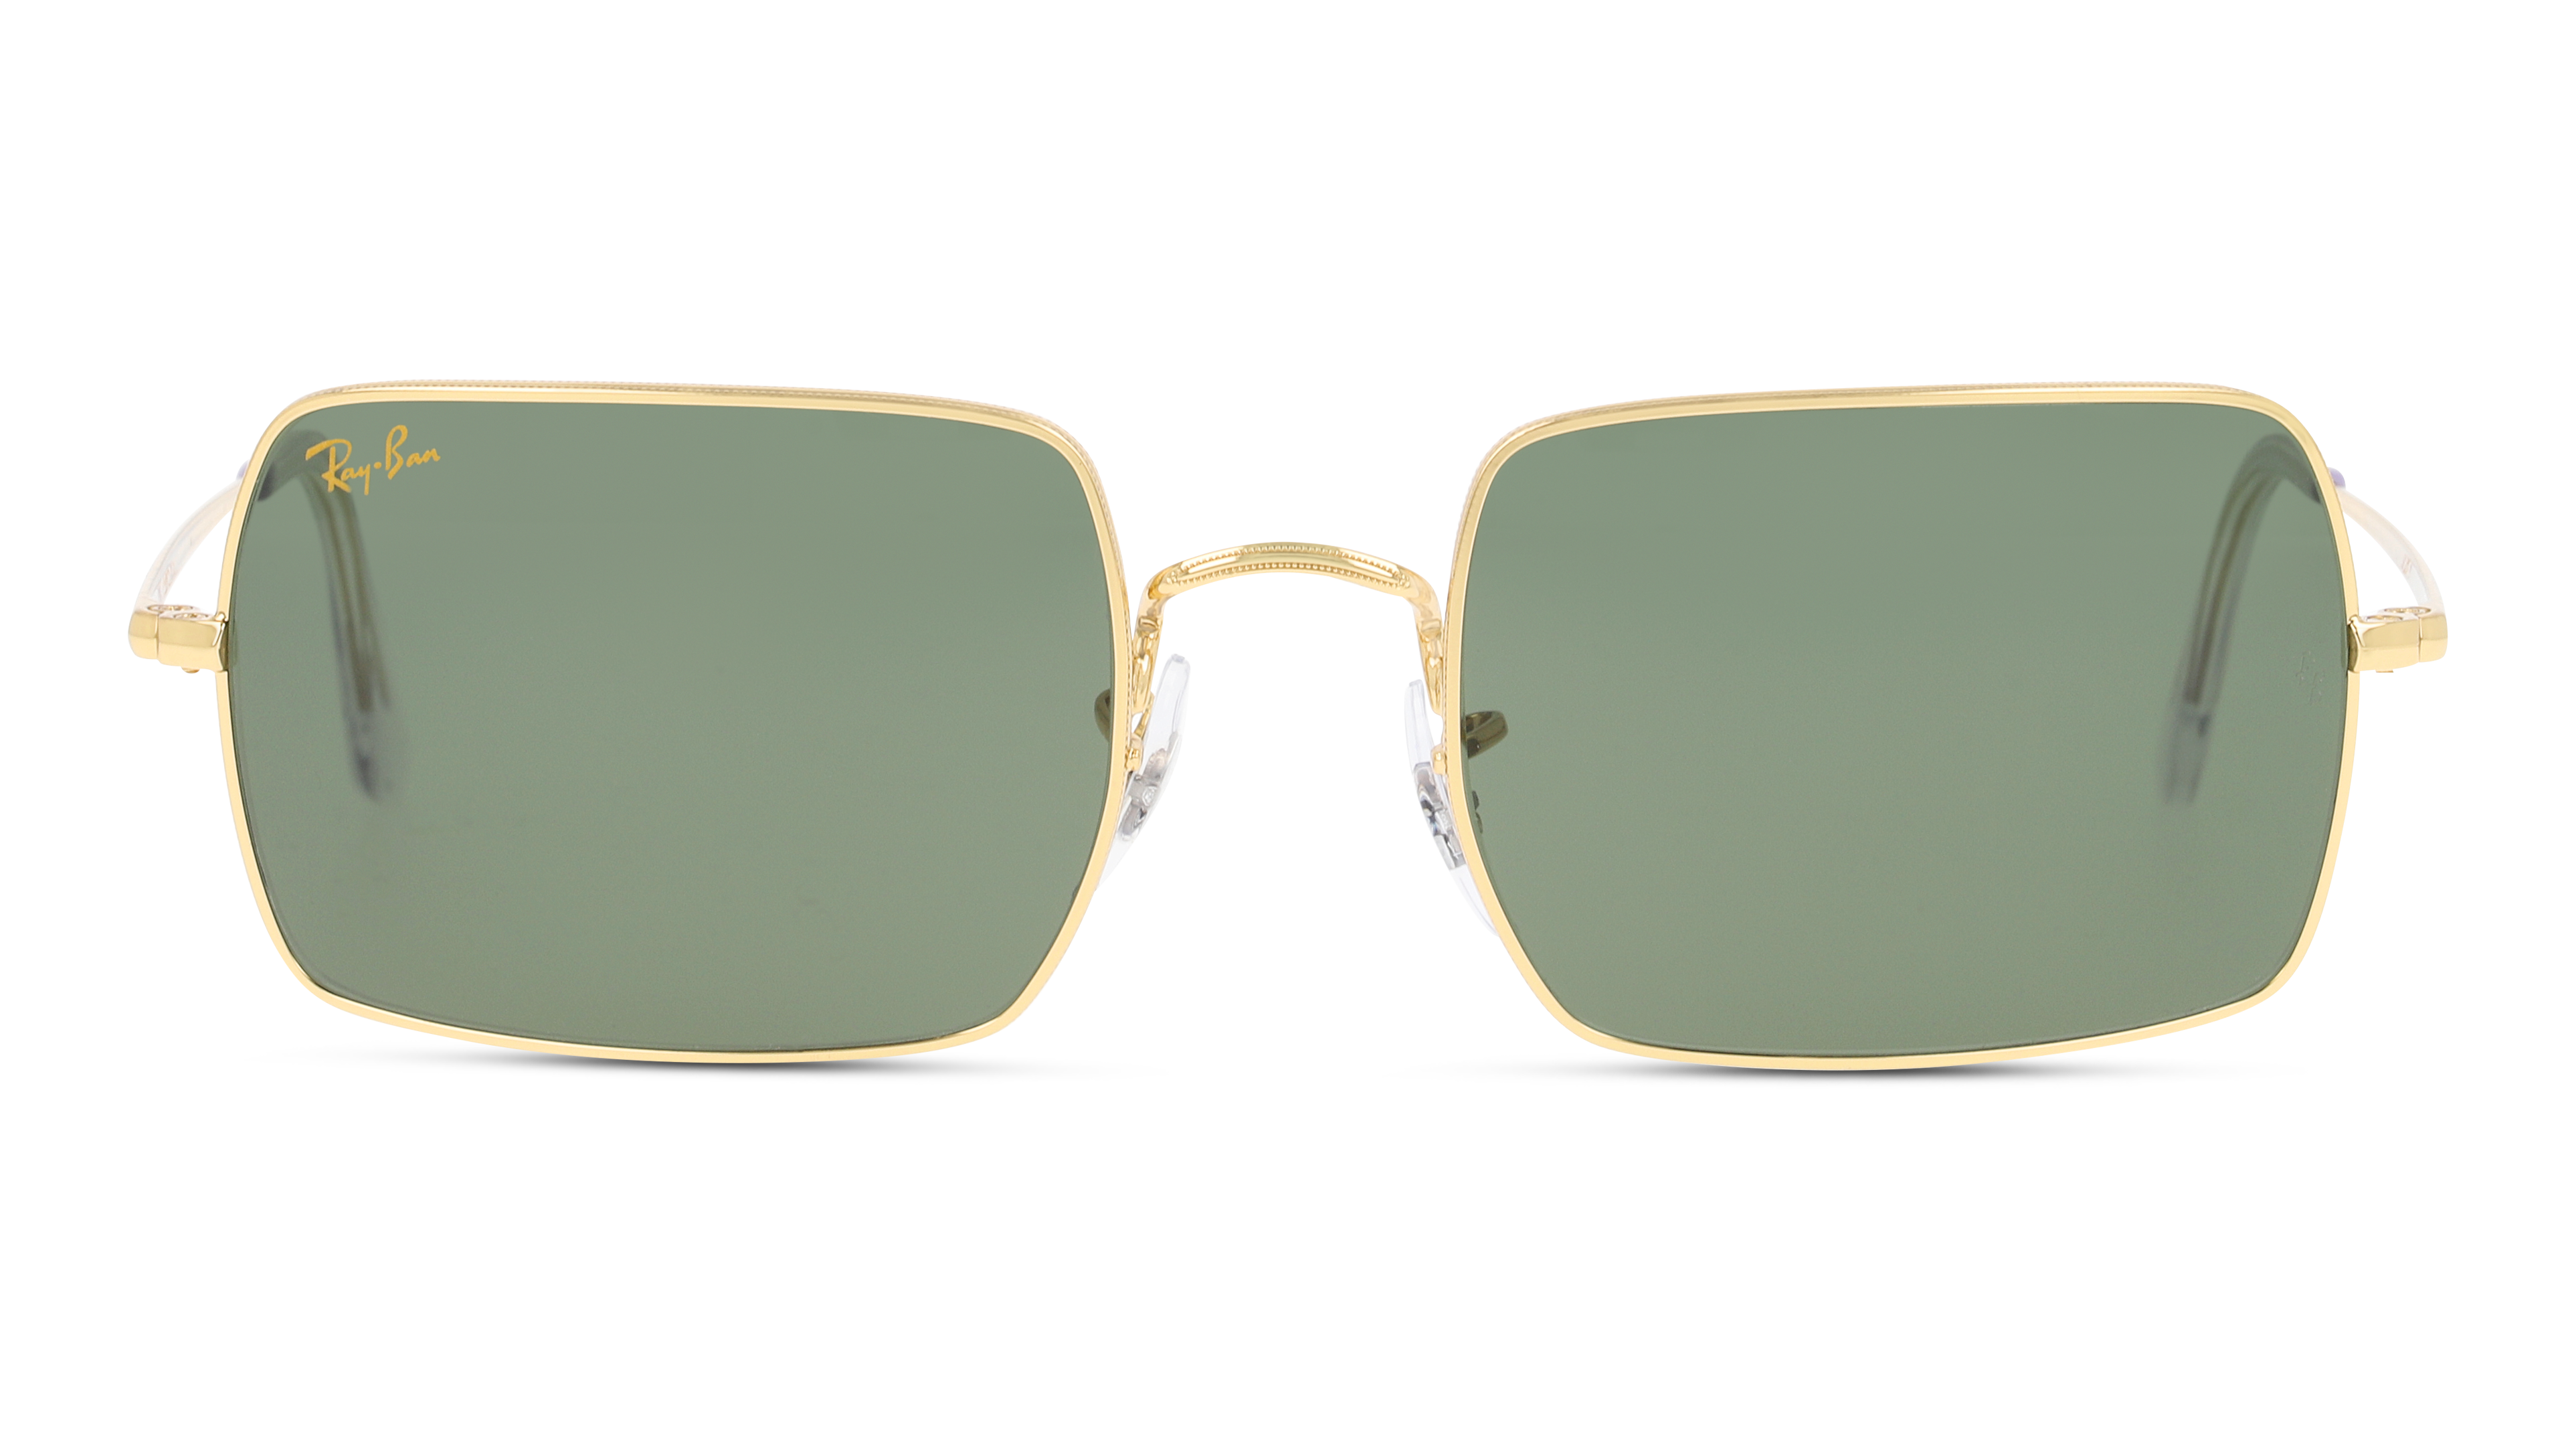 Front Ray-Ban Ray-Ban 0RB1969 919631 54/19 Goud/Groen